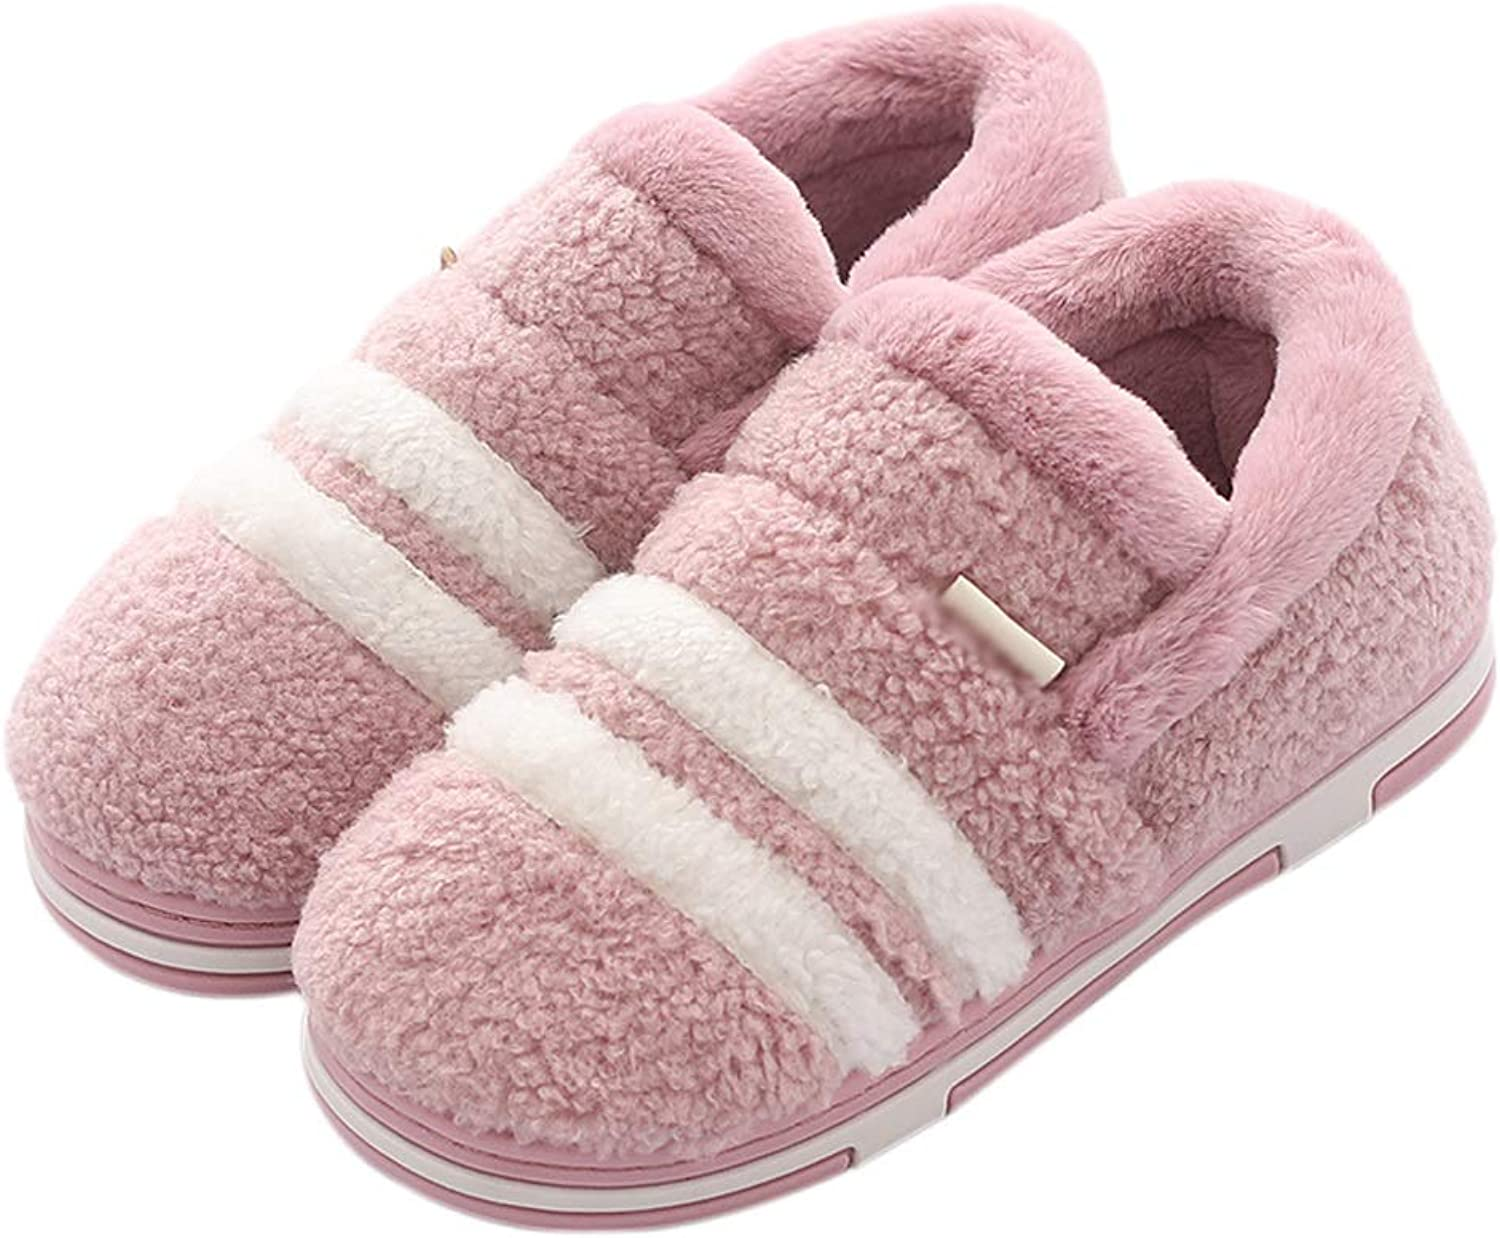 HUYP Female Home Non-Slip Light Purple Fashion Autumn and Winter Cotton Slippers Cute Fashion (Size   6 US)